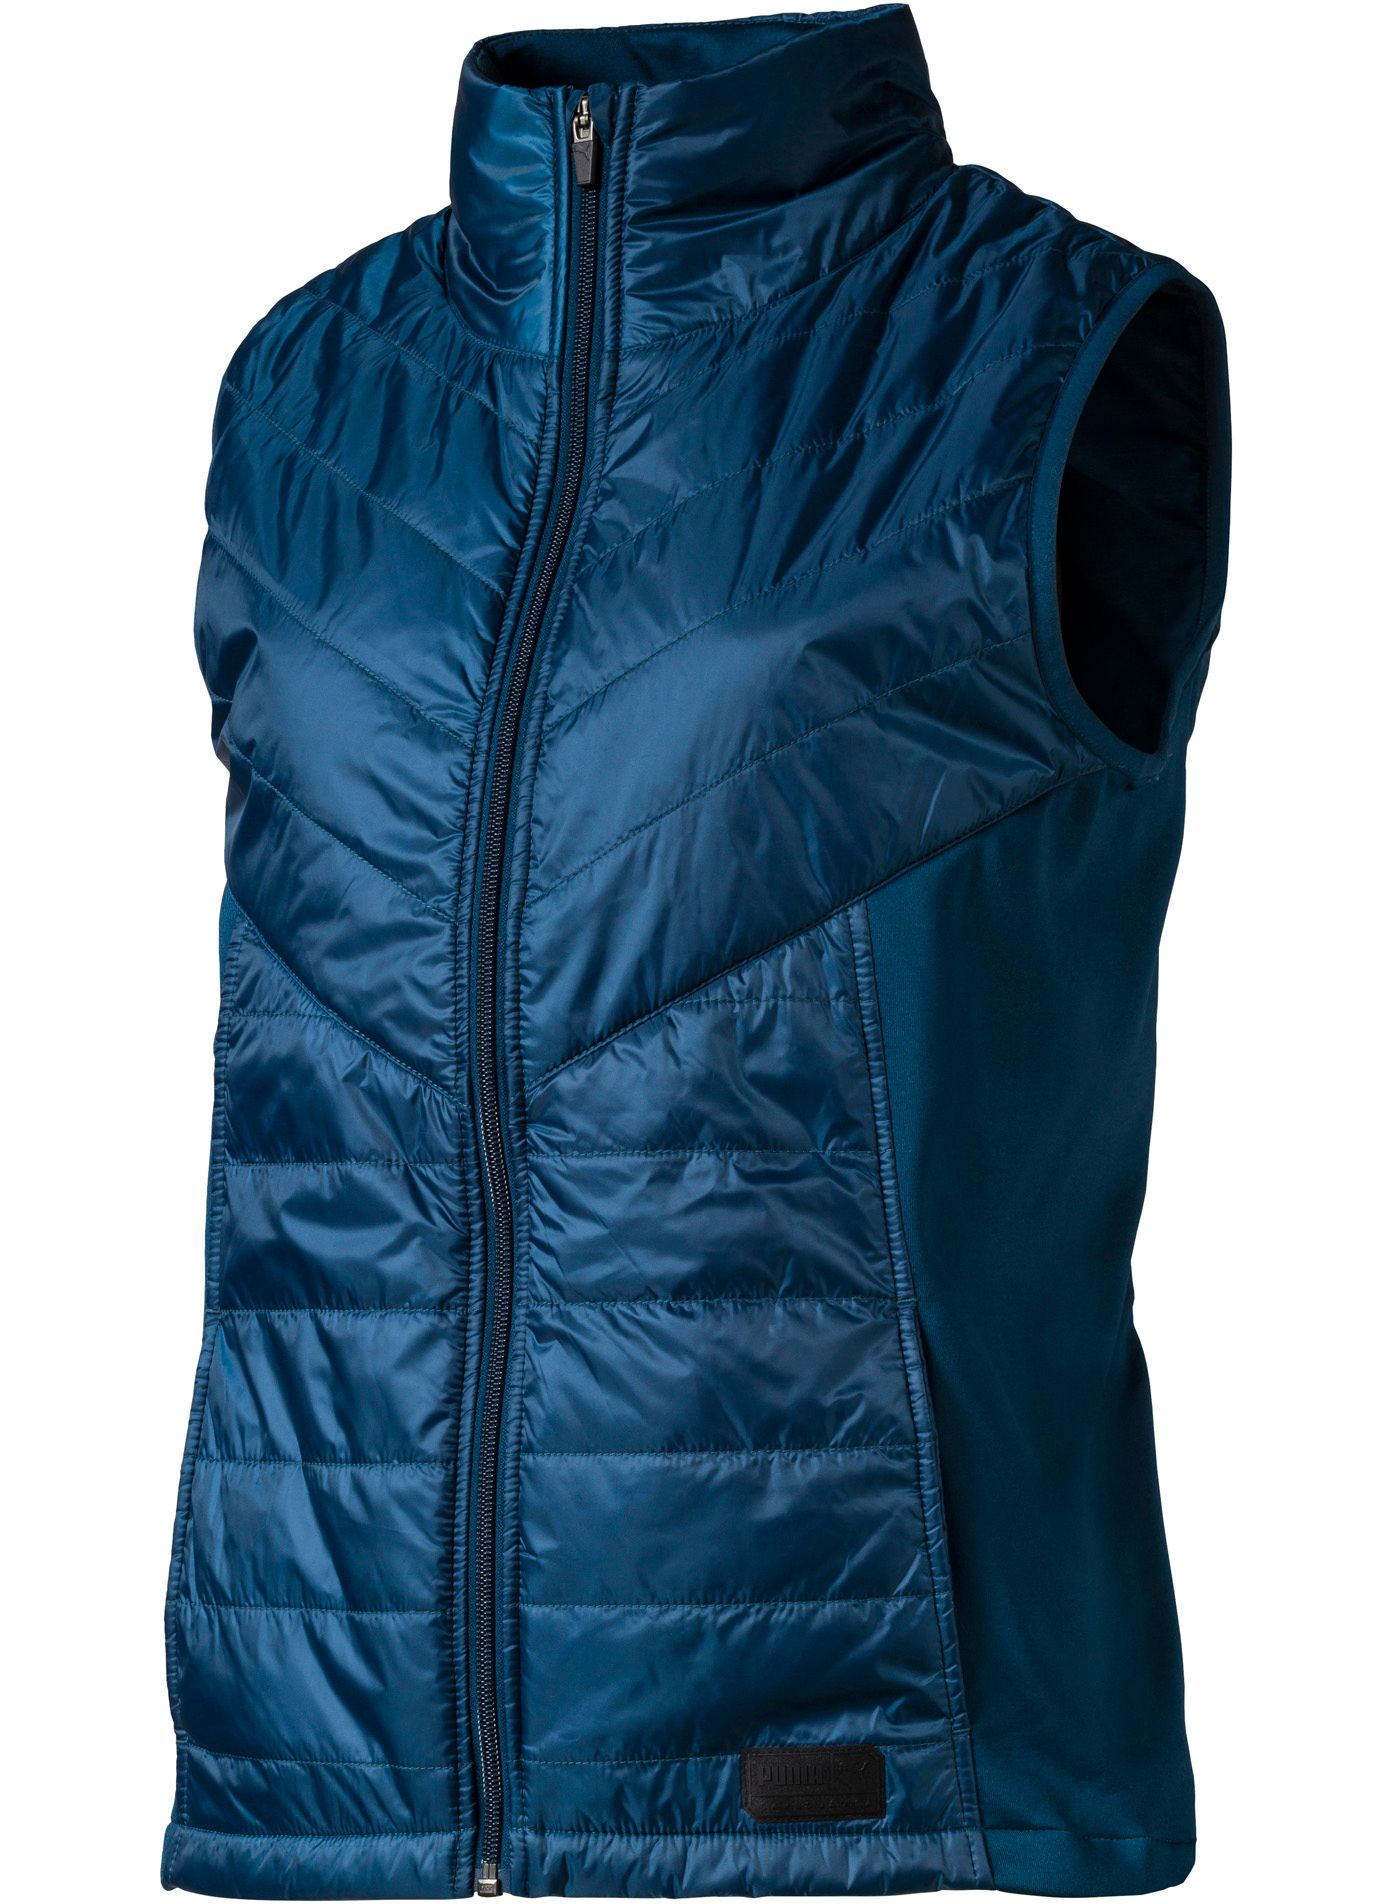 PUMA Women's Quilted PRIMALOFT Golf Vest